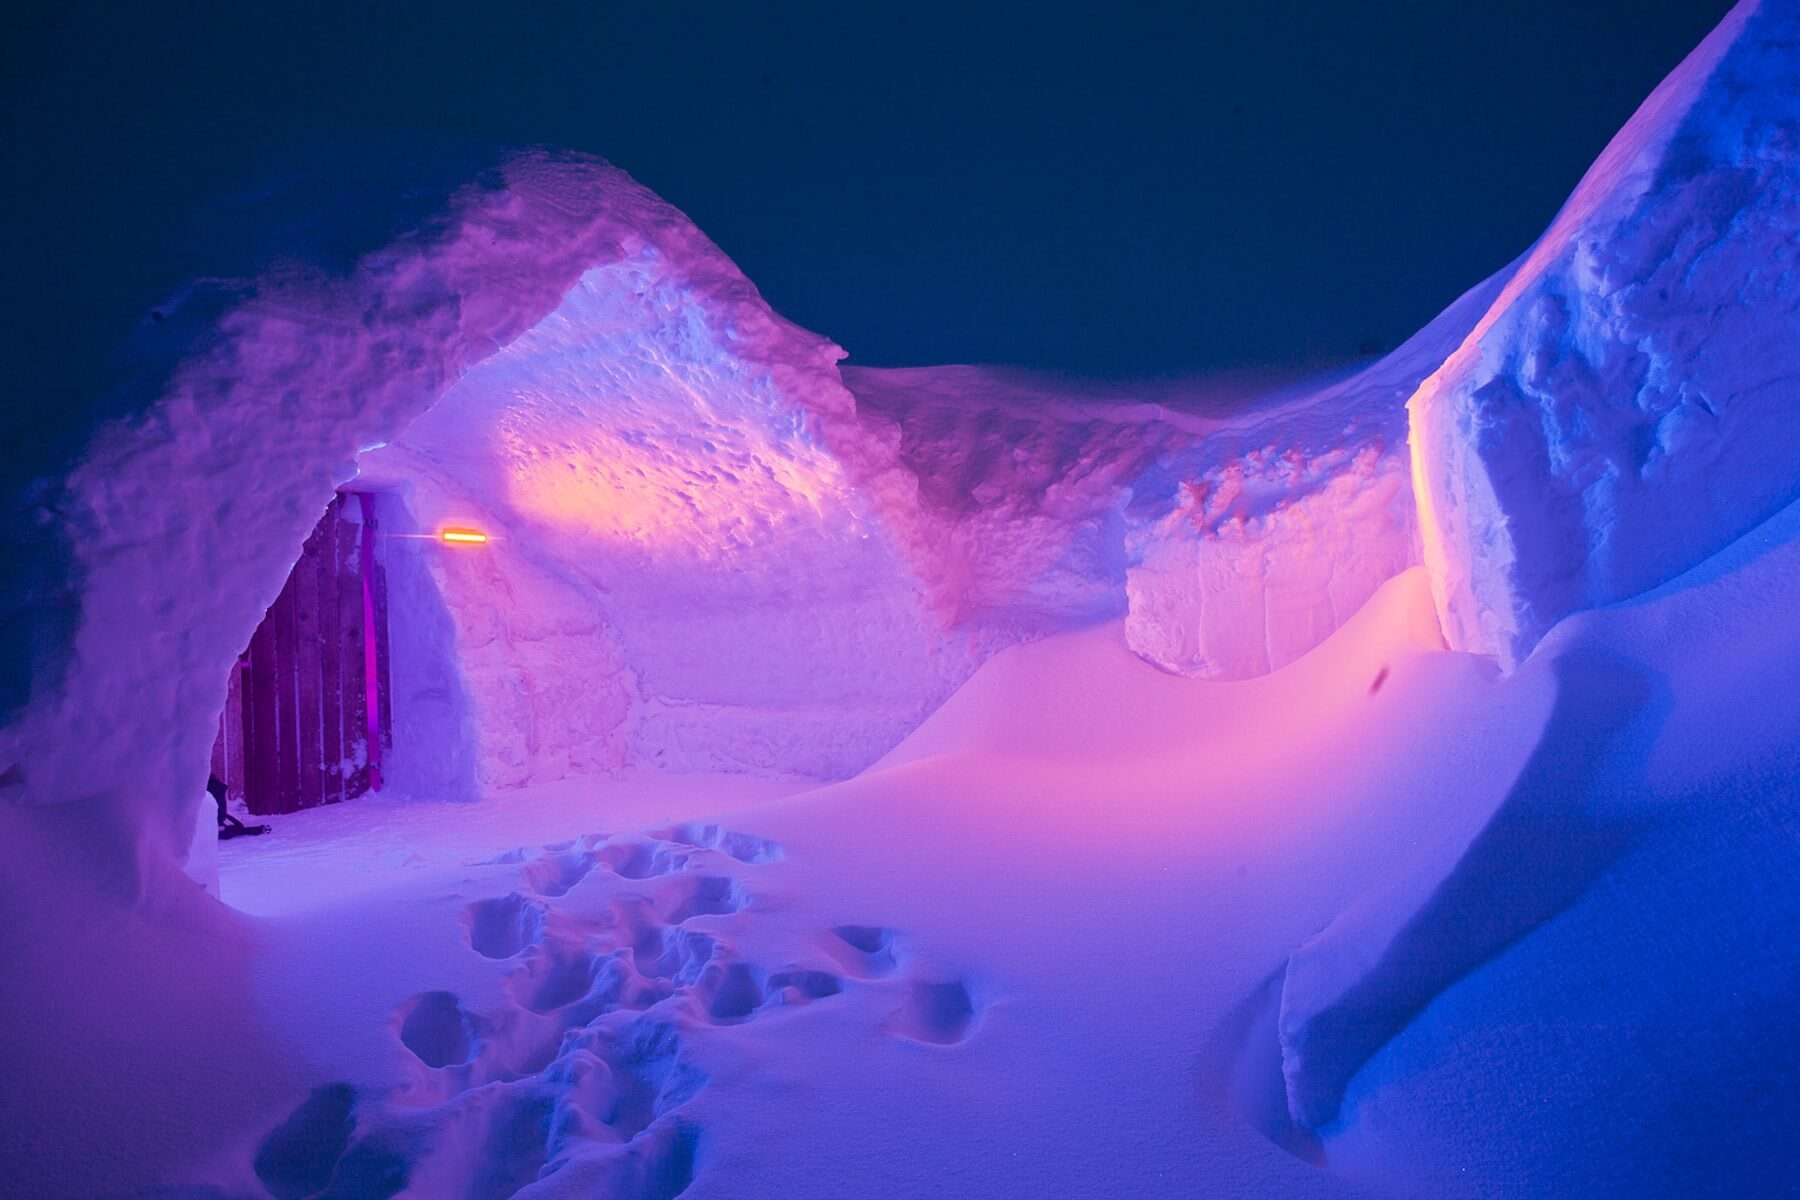 Entrance in the ice hotel at night